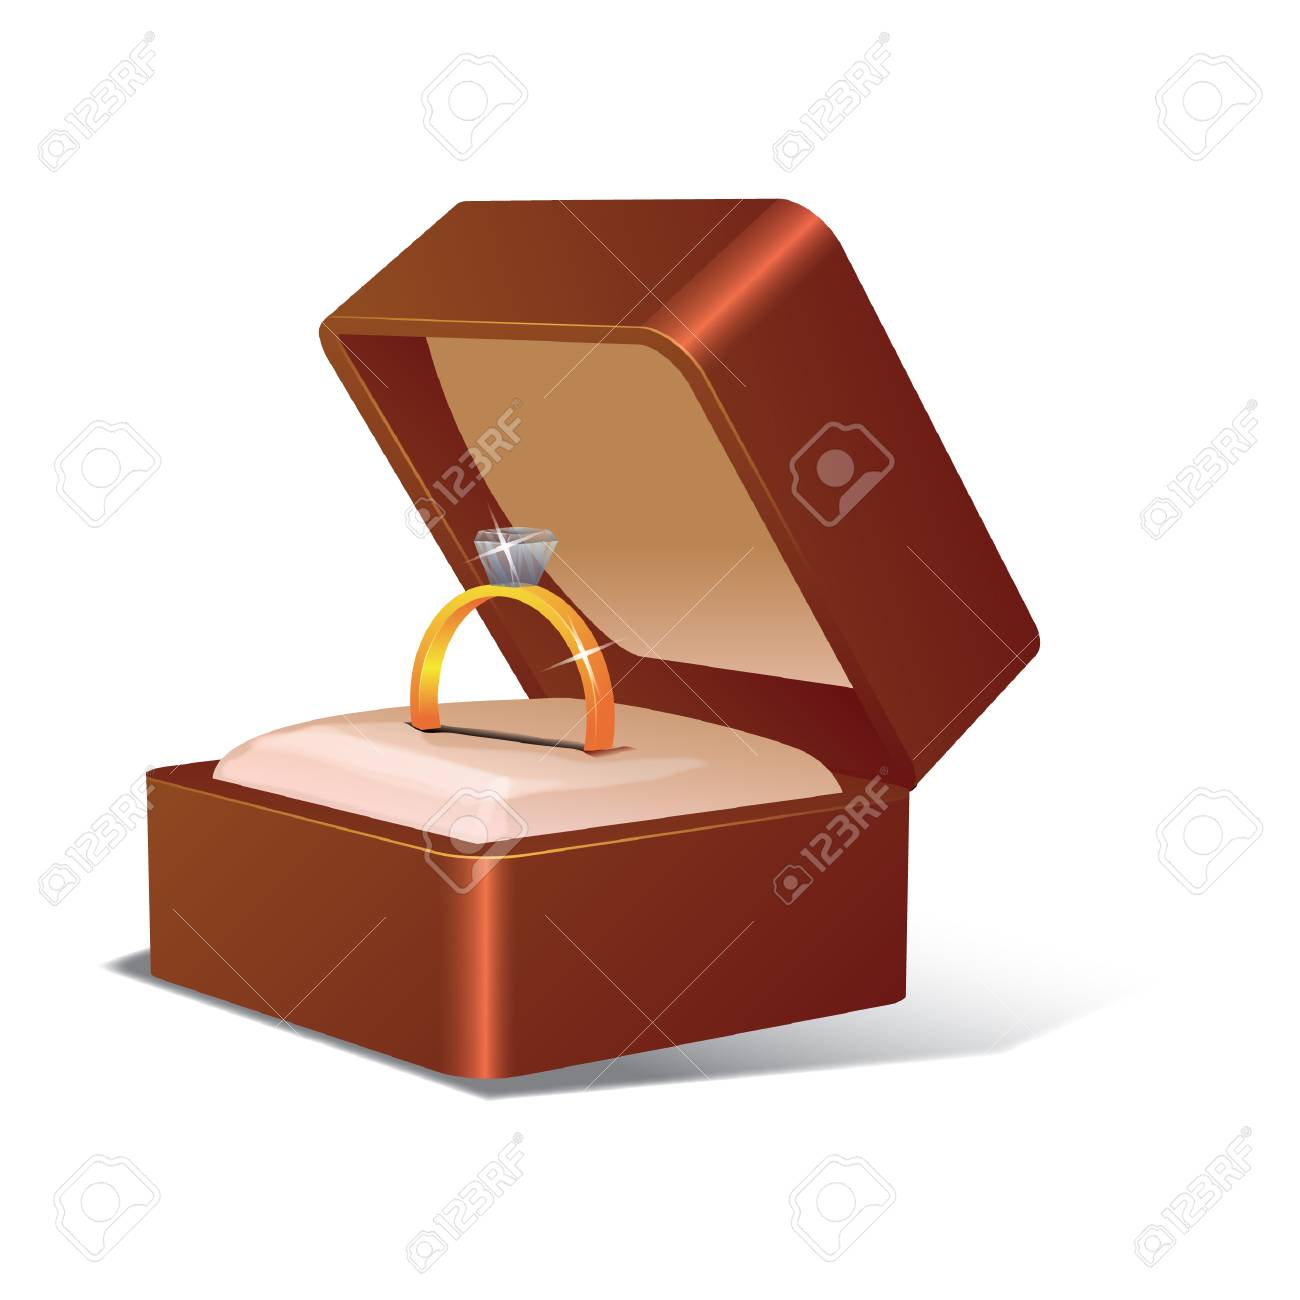 Wedding Ring In A Box Royalty Free Cliparts, Vectors, And Stock ...